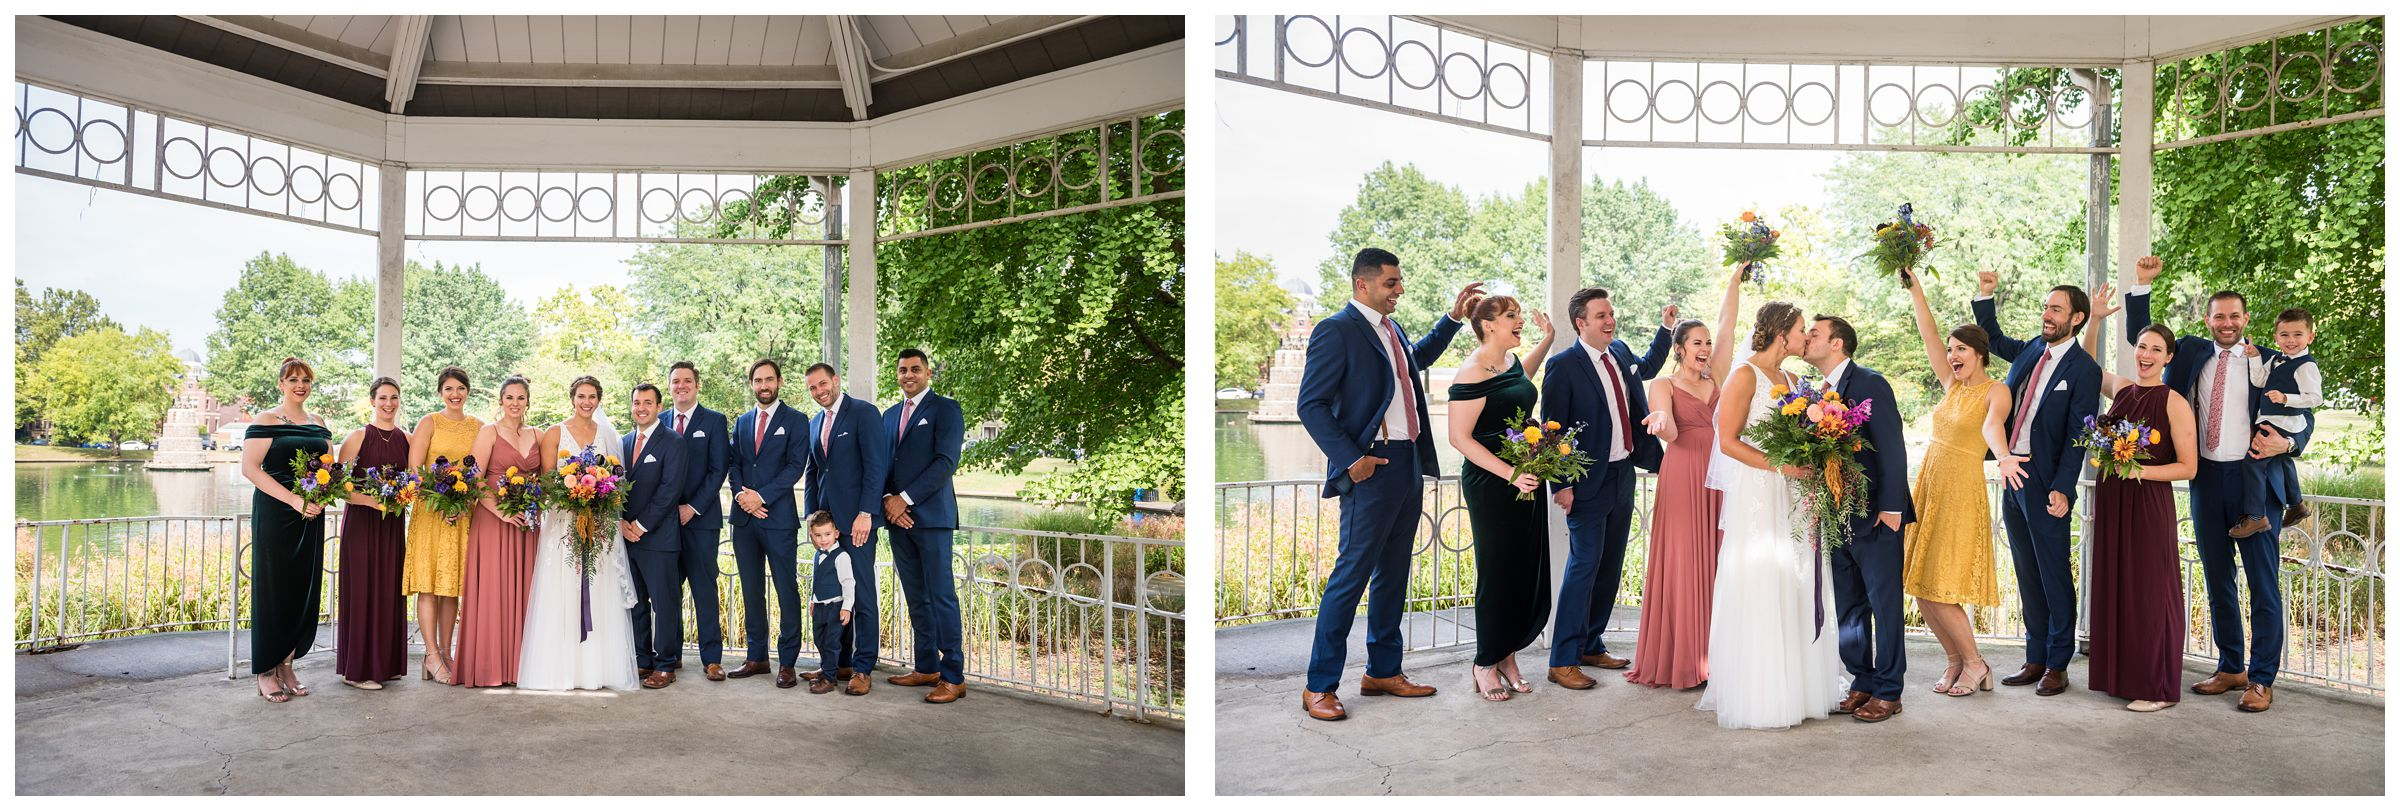 Columbus wedding party portraits in the gazebo at Goodale Park in the Short North